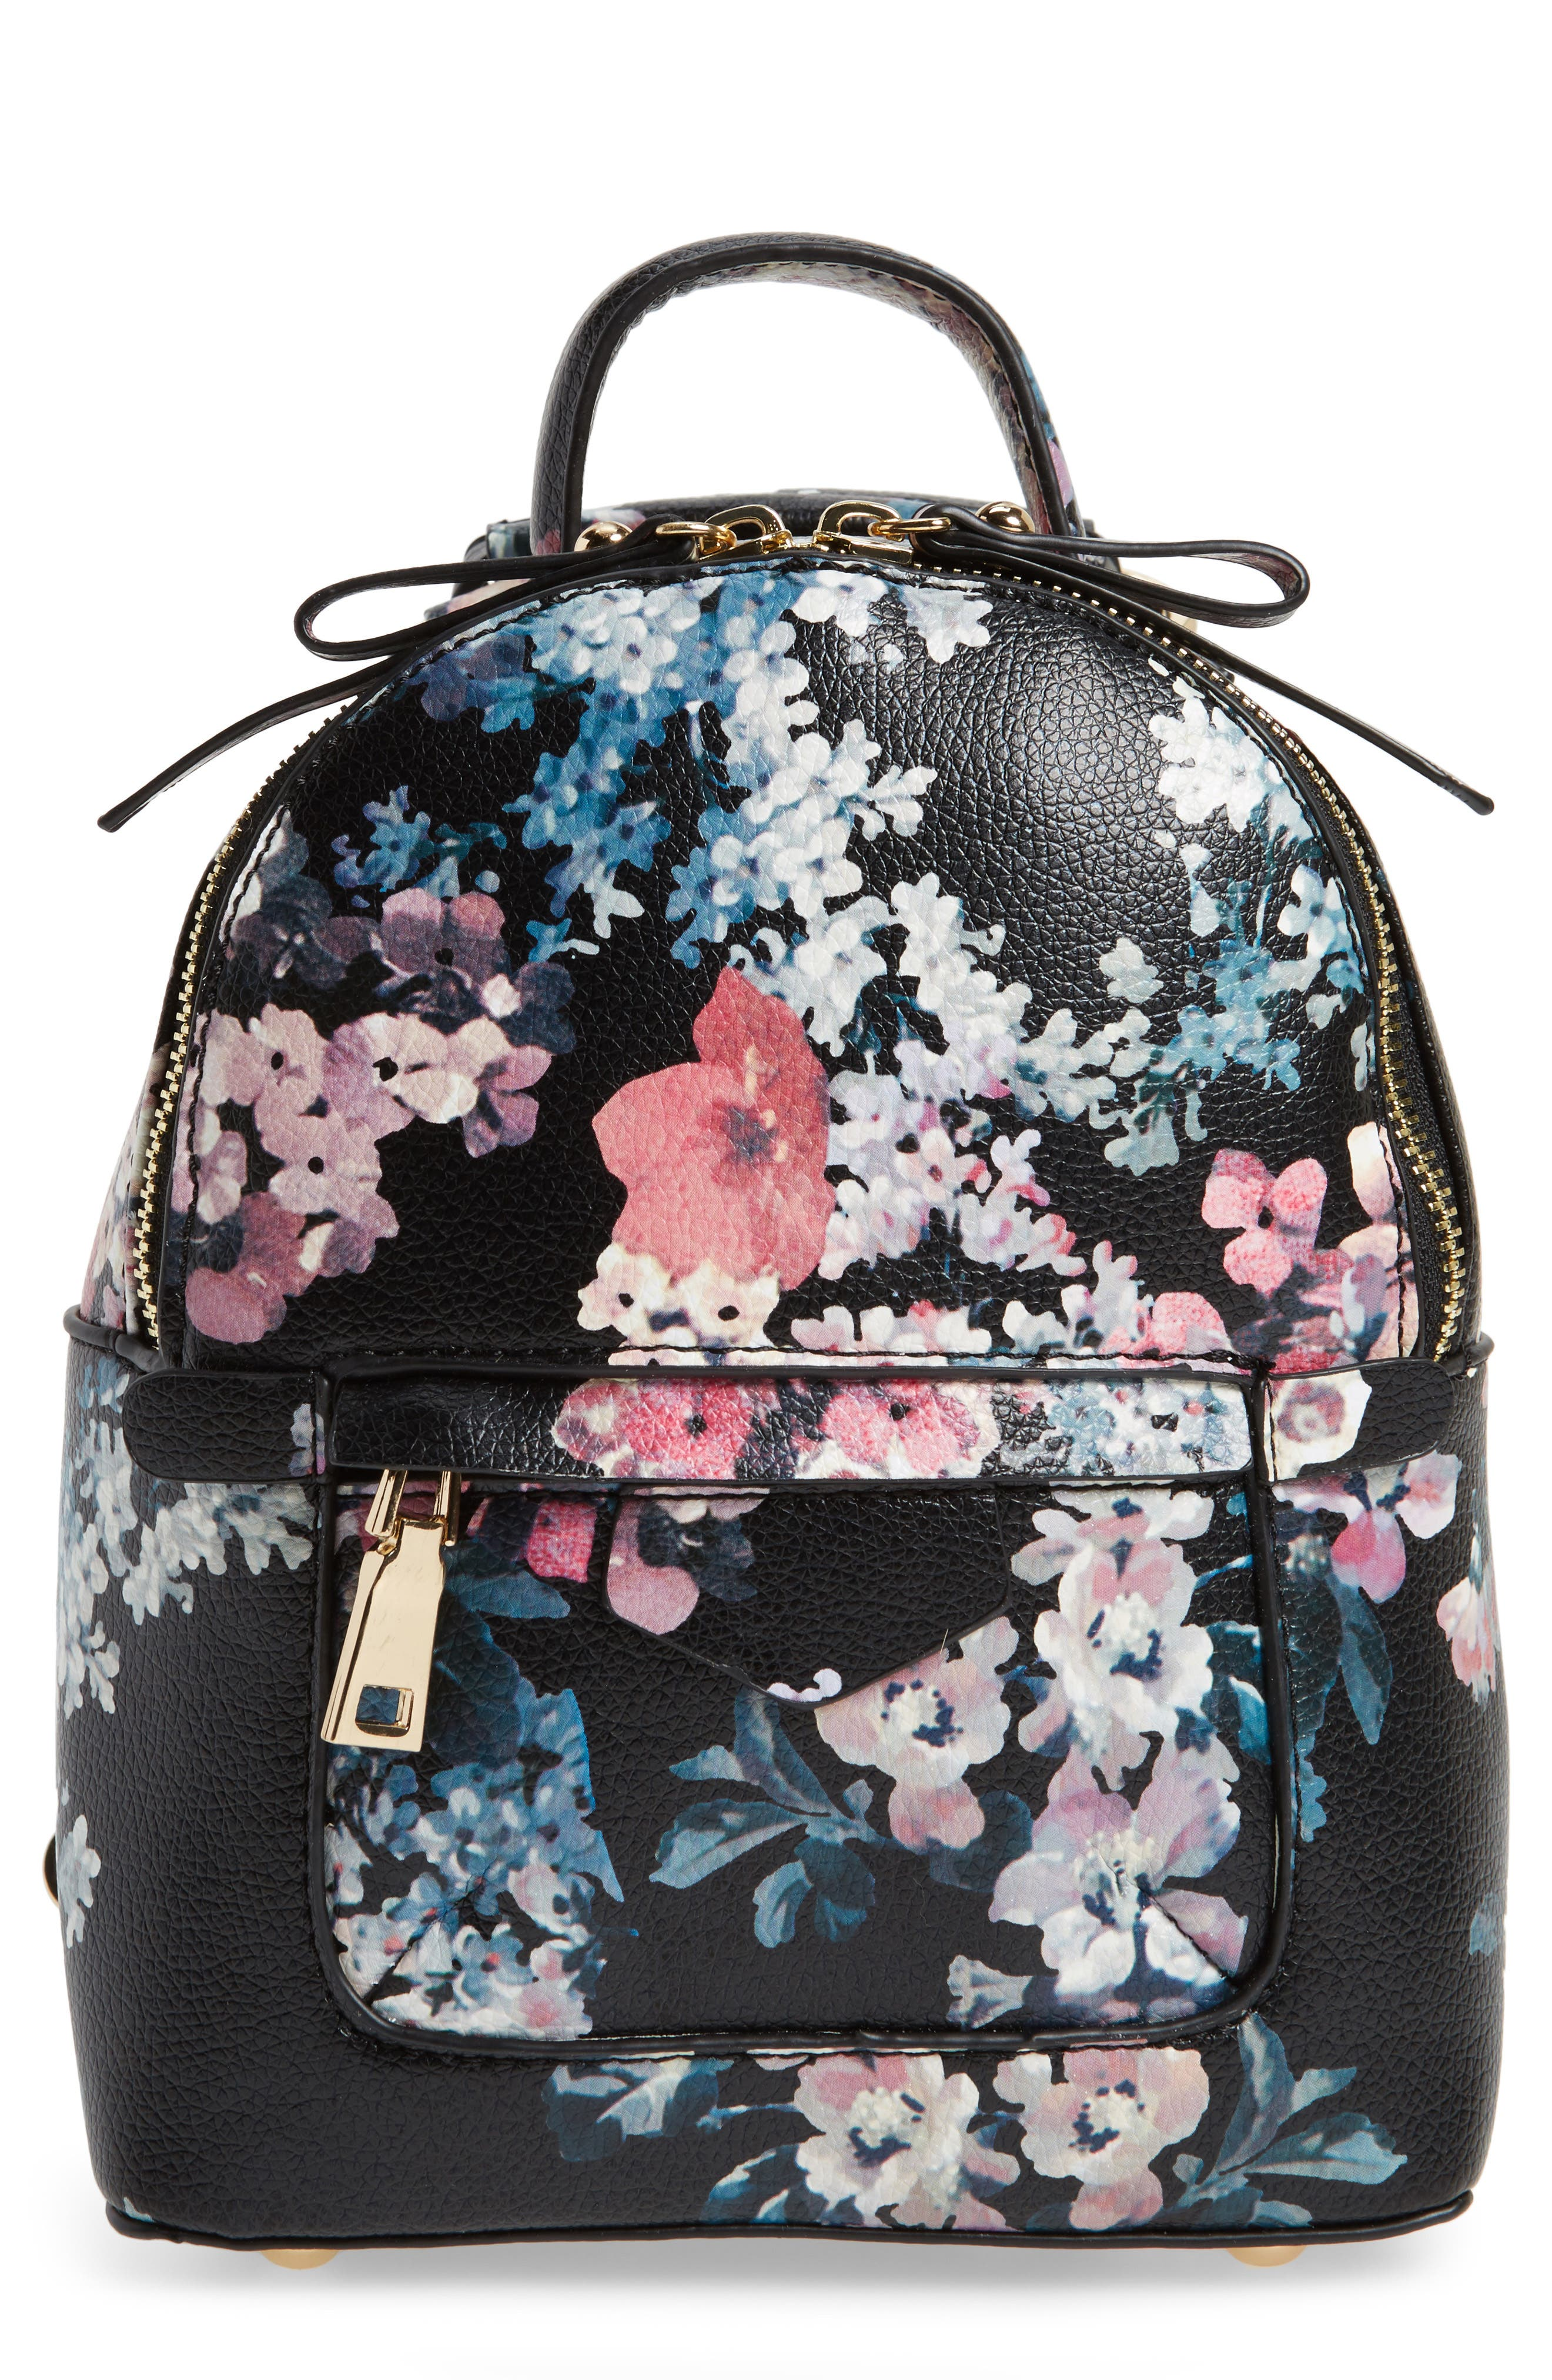 Alternate Image 1 Selected - BP. Mini Floral Faux Leather Mini Backpack